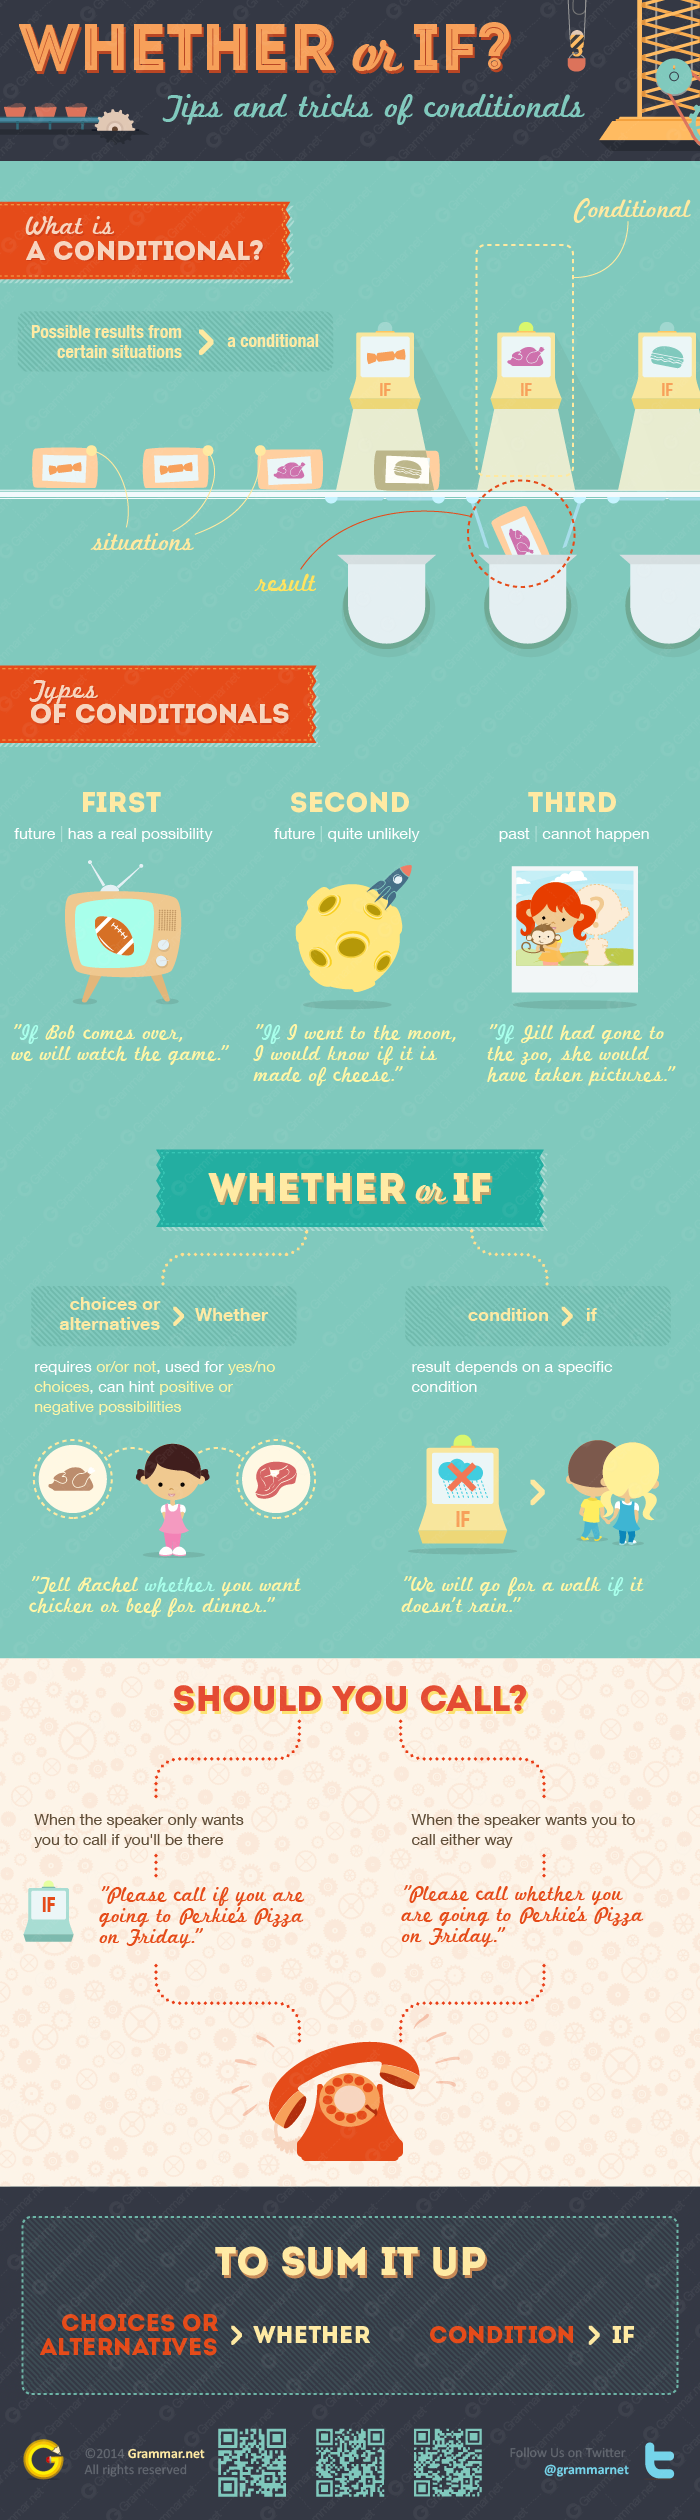 Differnce Between Whether and If